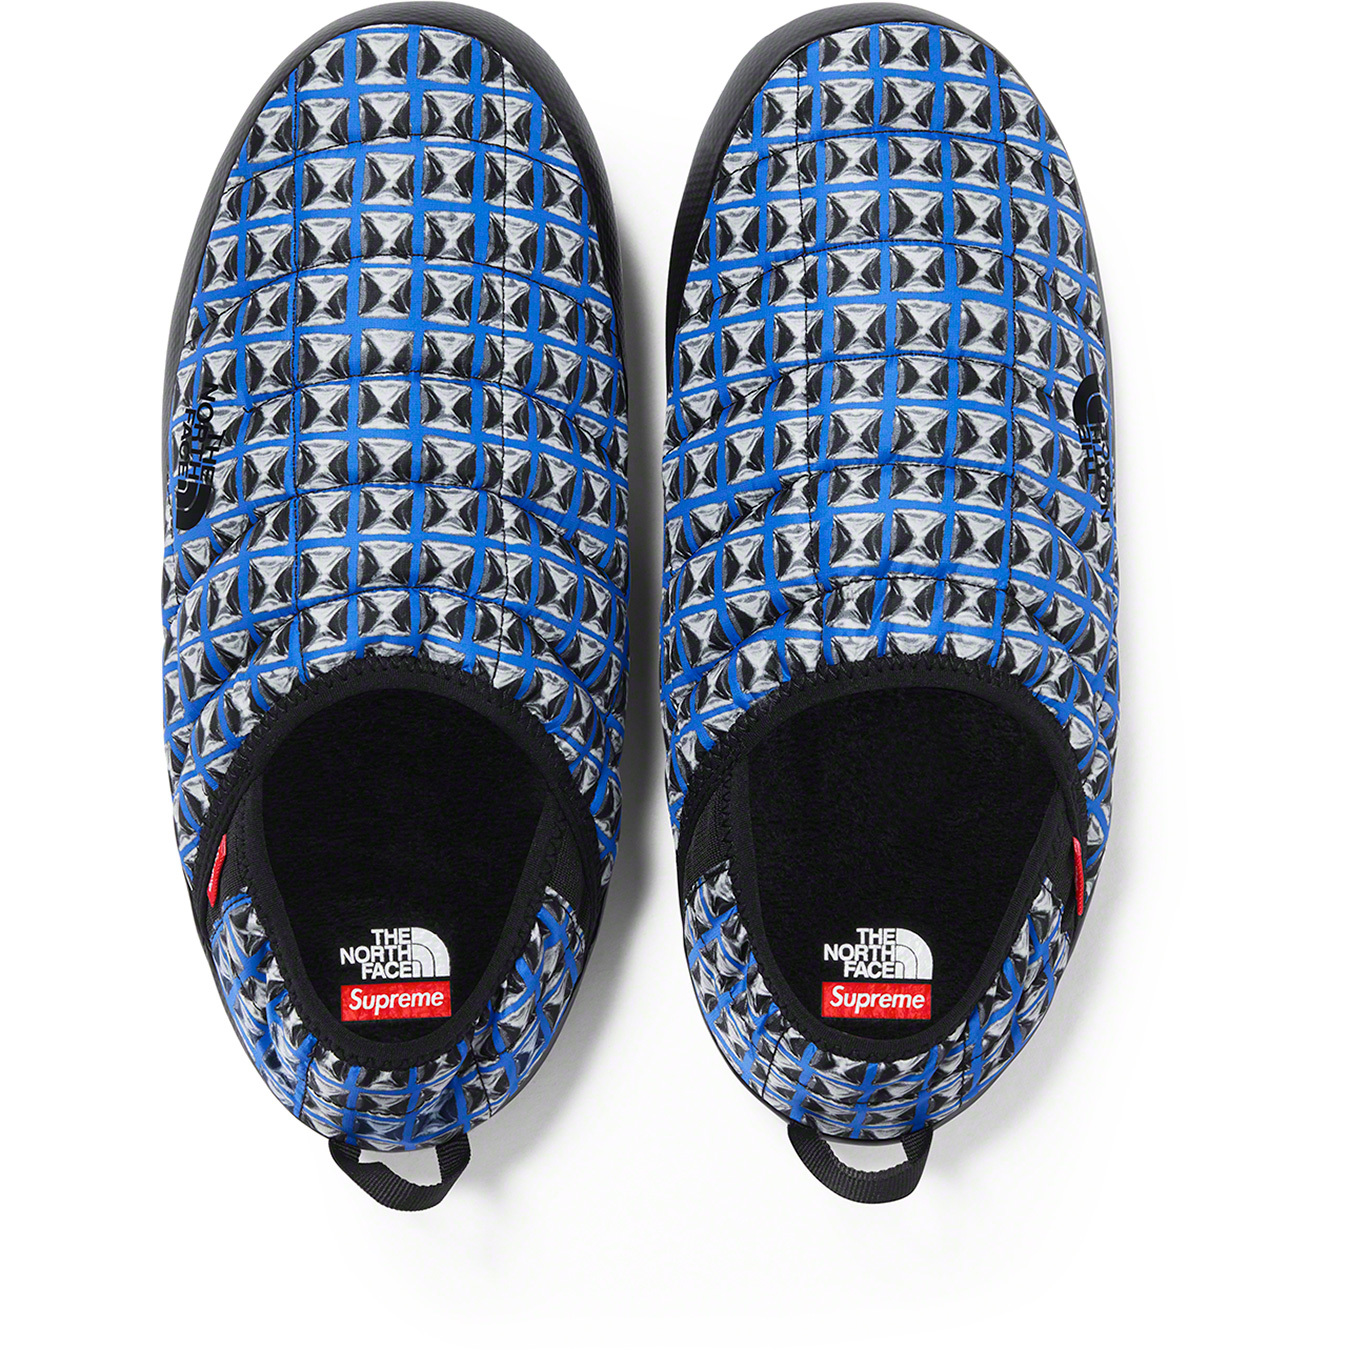 supreme-the-north-face-studded-21ss-collection-release-20210327-week5-traction-mule